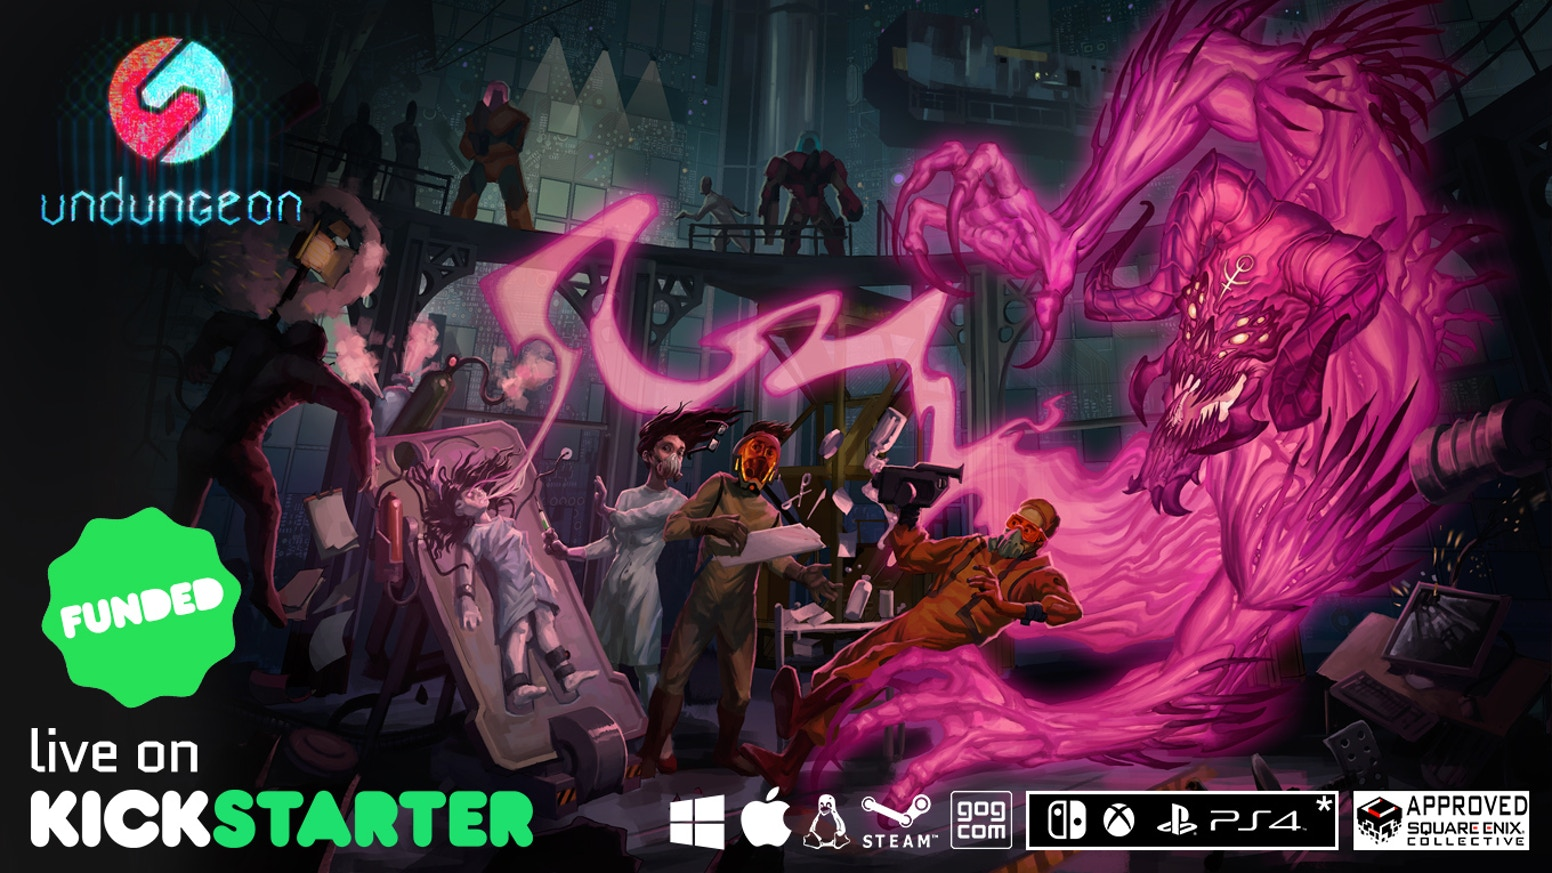 UnDungeon is a beautiful and complex Action/RPG pixelart game with a rich background, immersive story and seven unique characters.